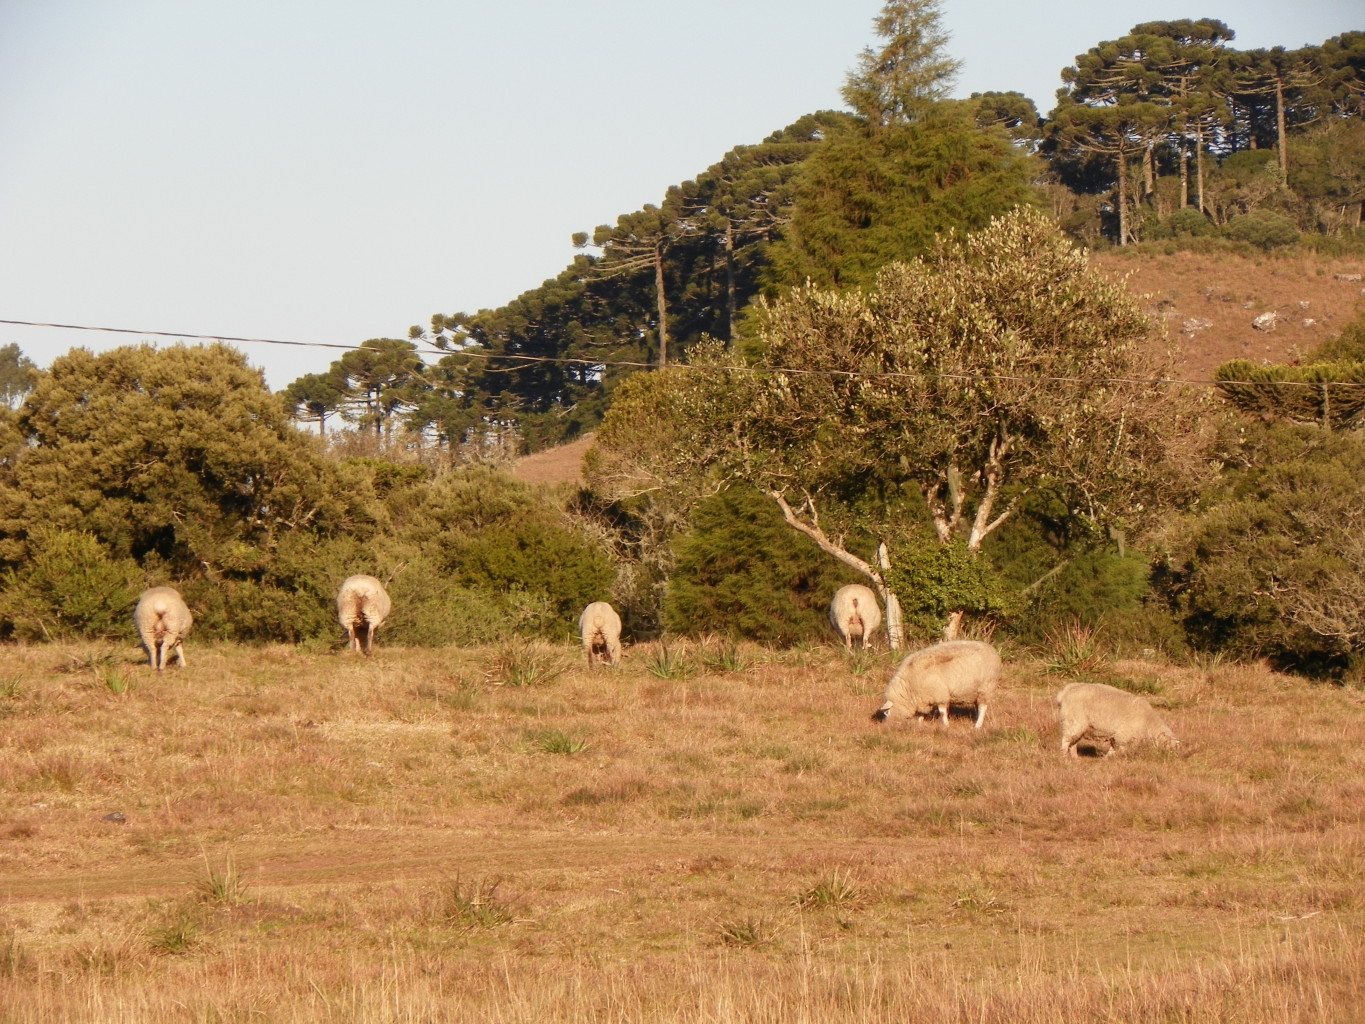 Typical sheep breeding in the region. Photo by Francine Schulz.